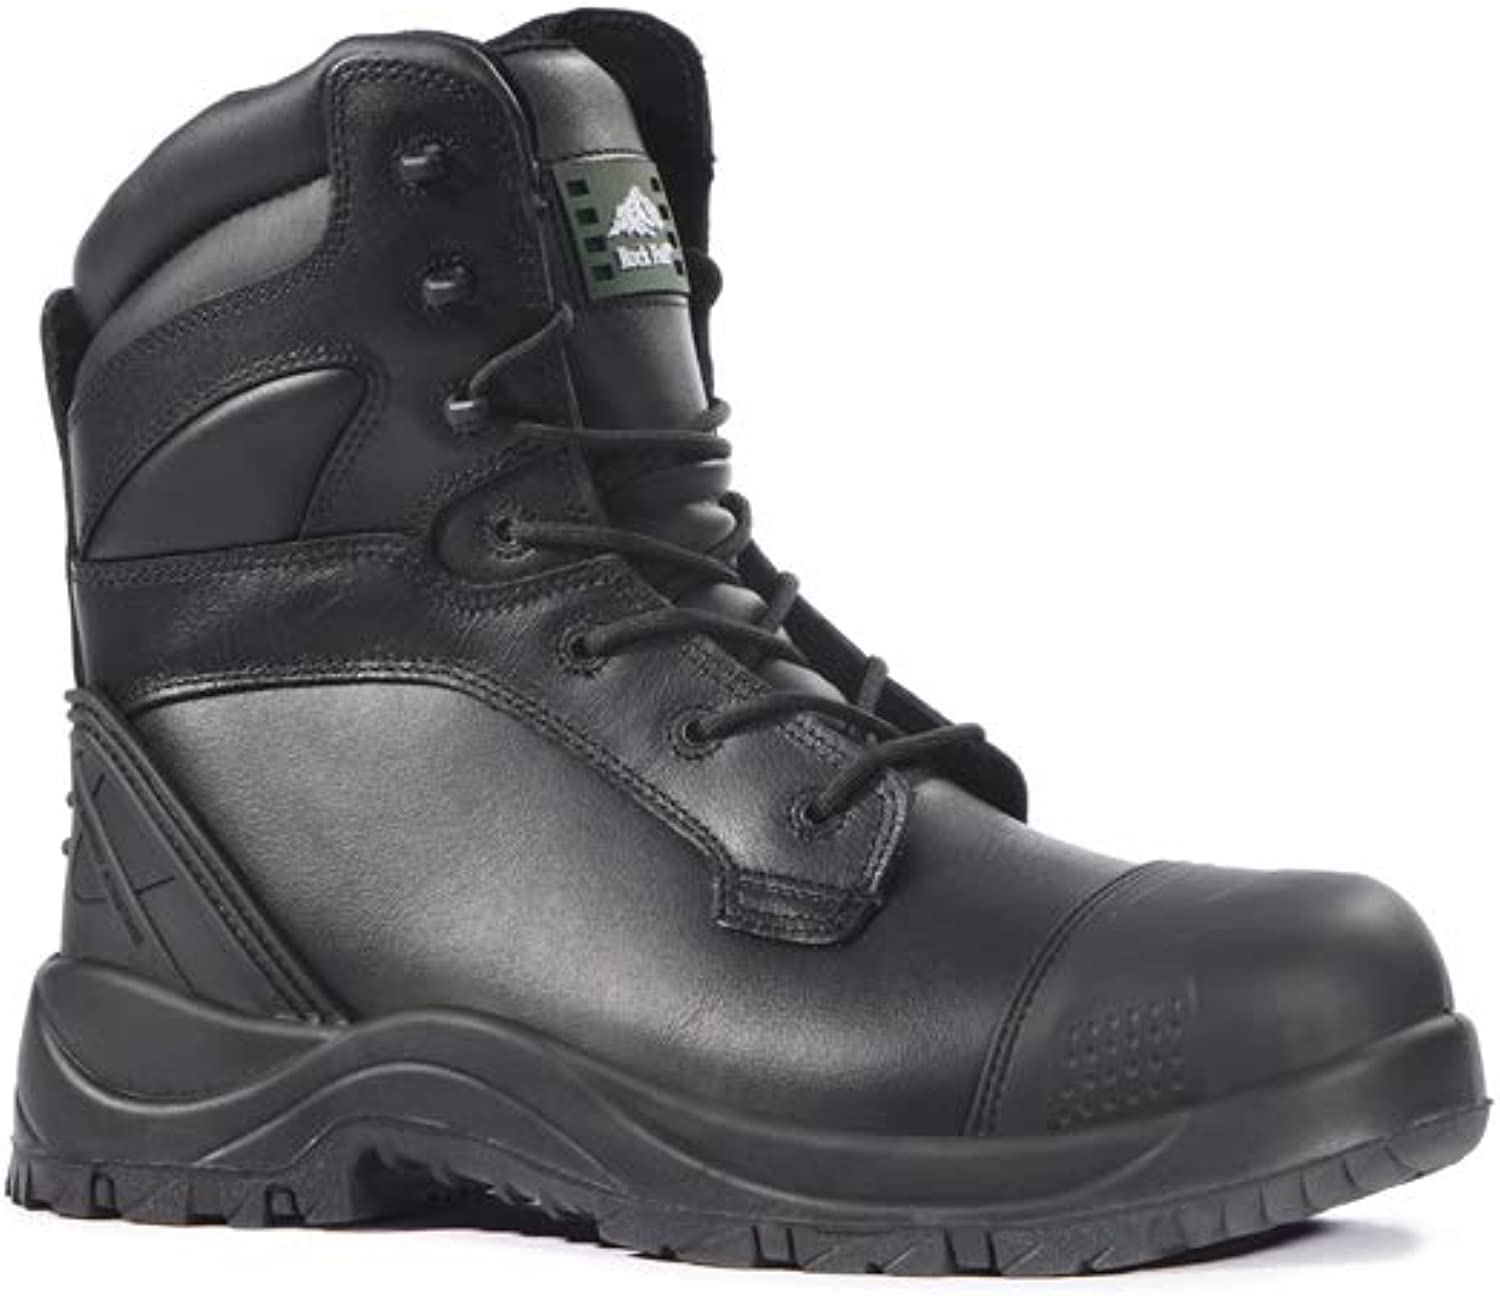 Rock Fall Men's Clay Safety Boots